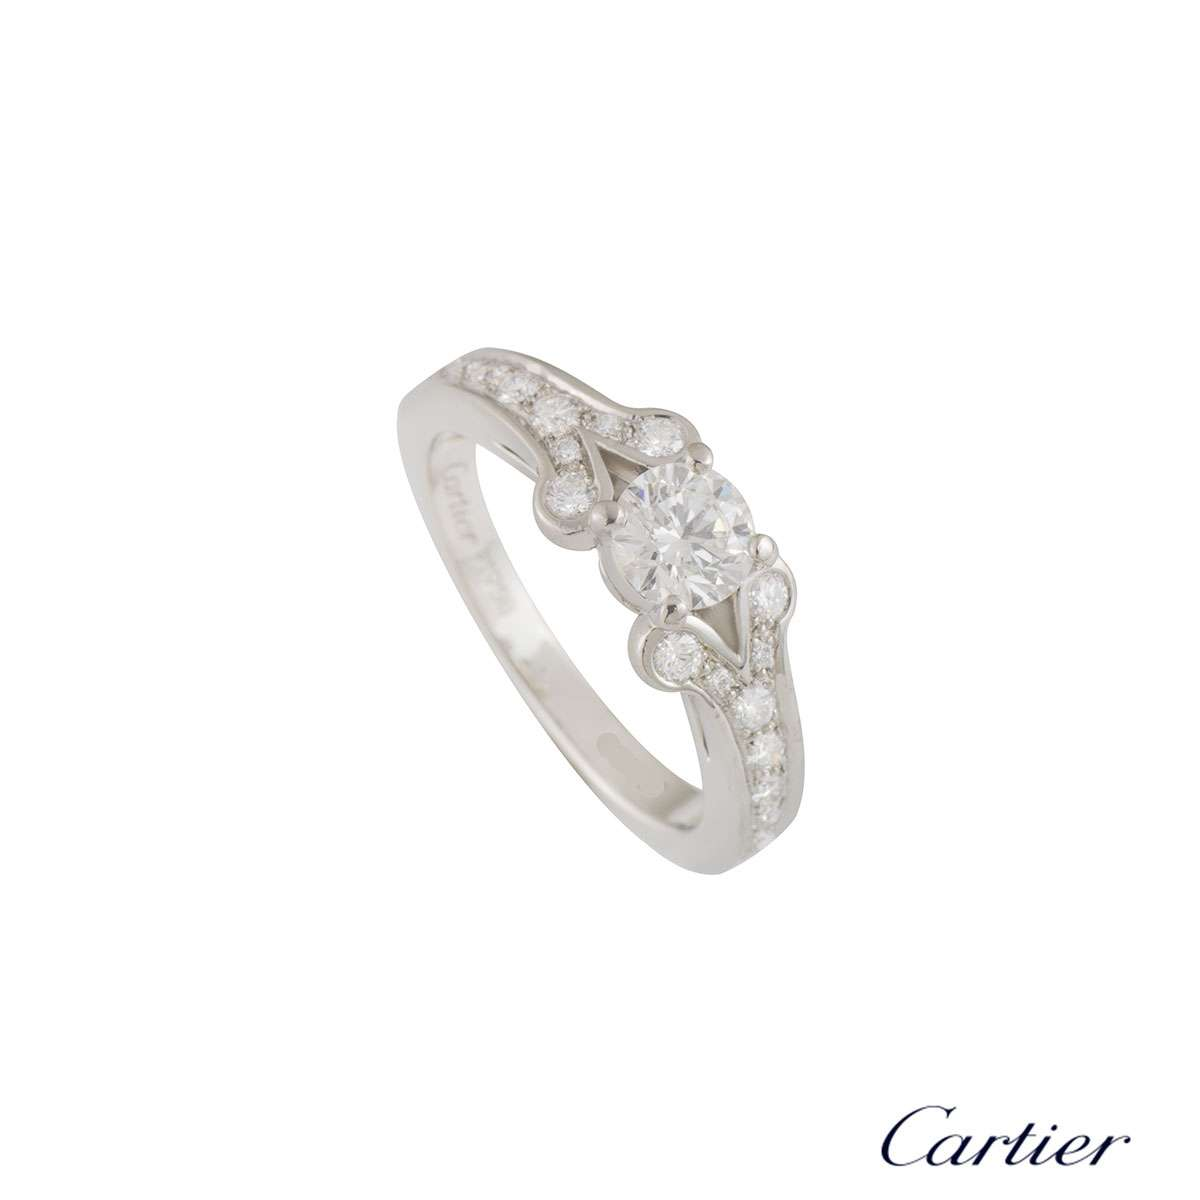 Cartier Platinum Diamond Ballerine Ring 0.53ct G/VS1 XXX N4196951